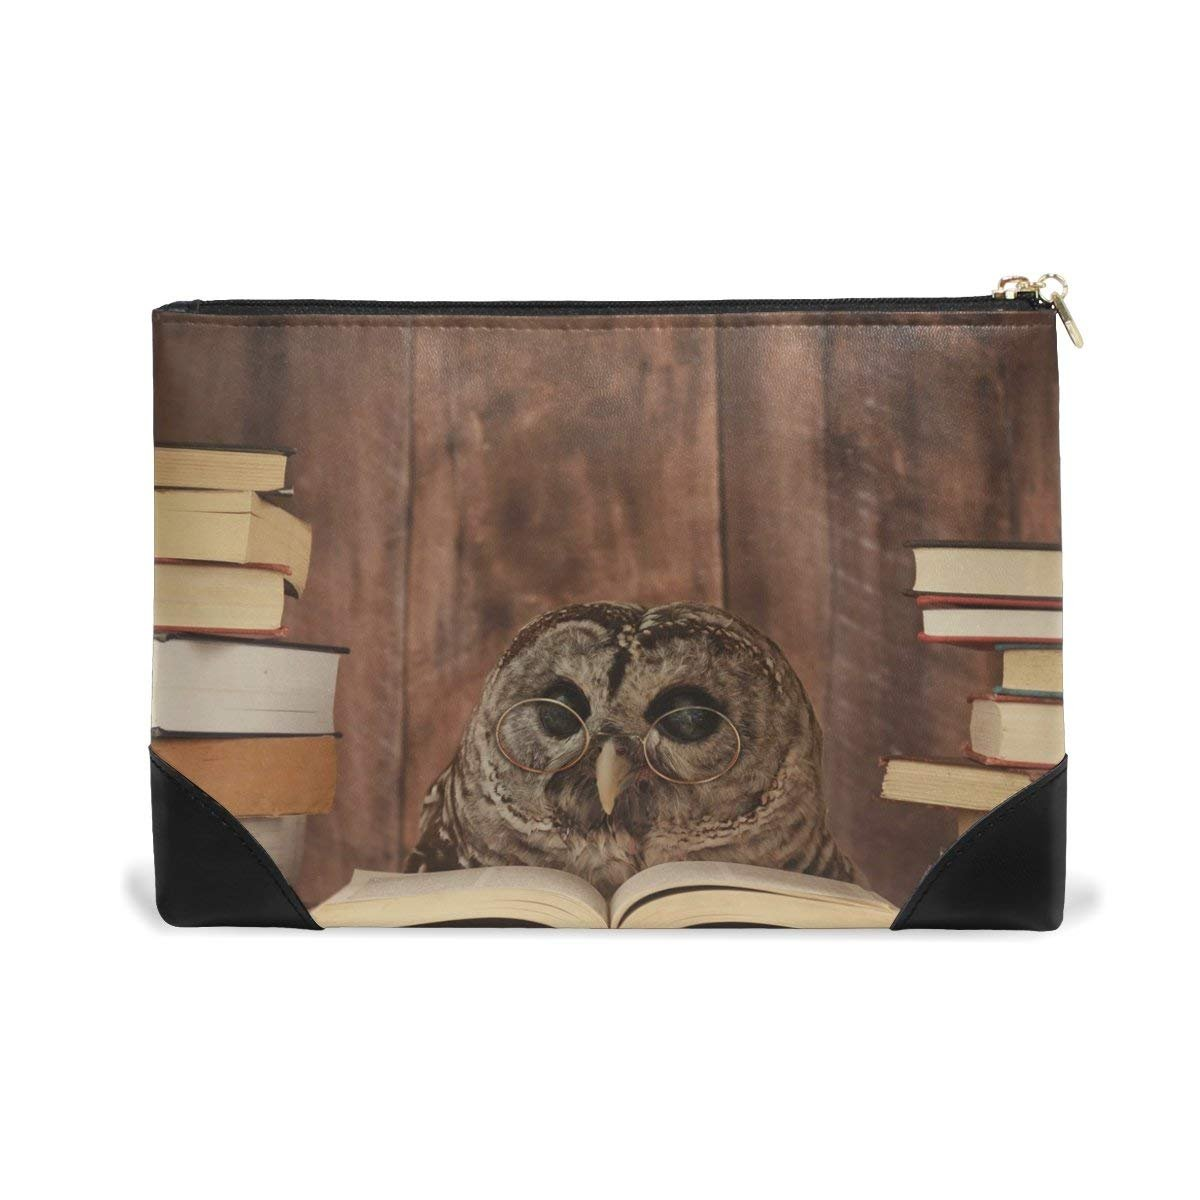 BLEFE Retro Owl with Glasses Reading Book Makeup Cosmetic Bag Pouch Travel Bag for Women Girls